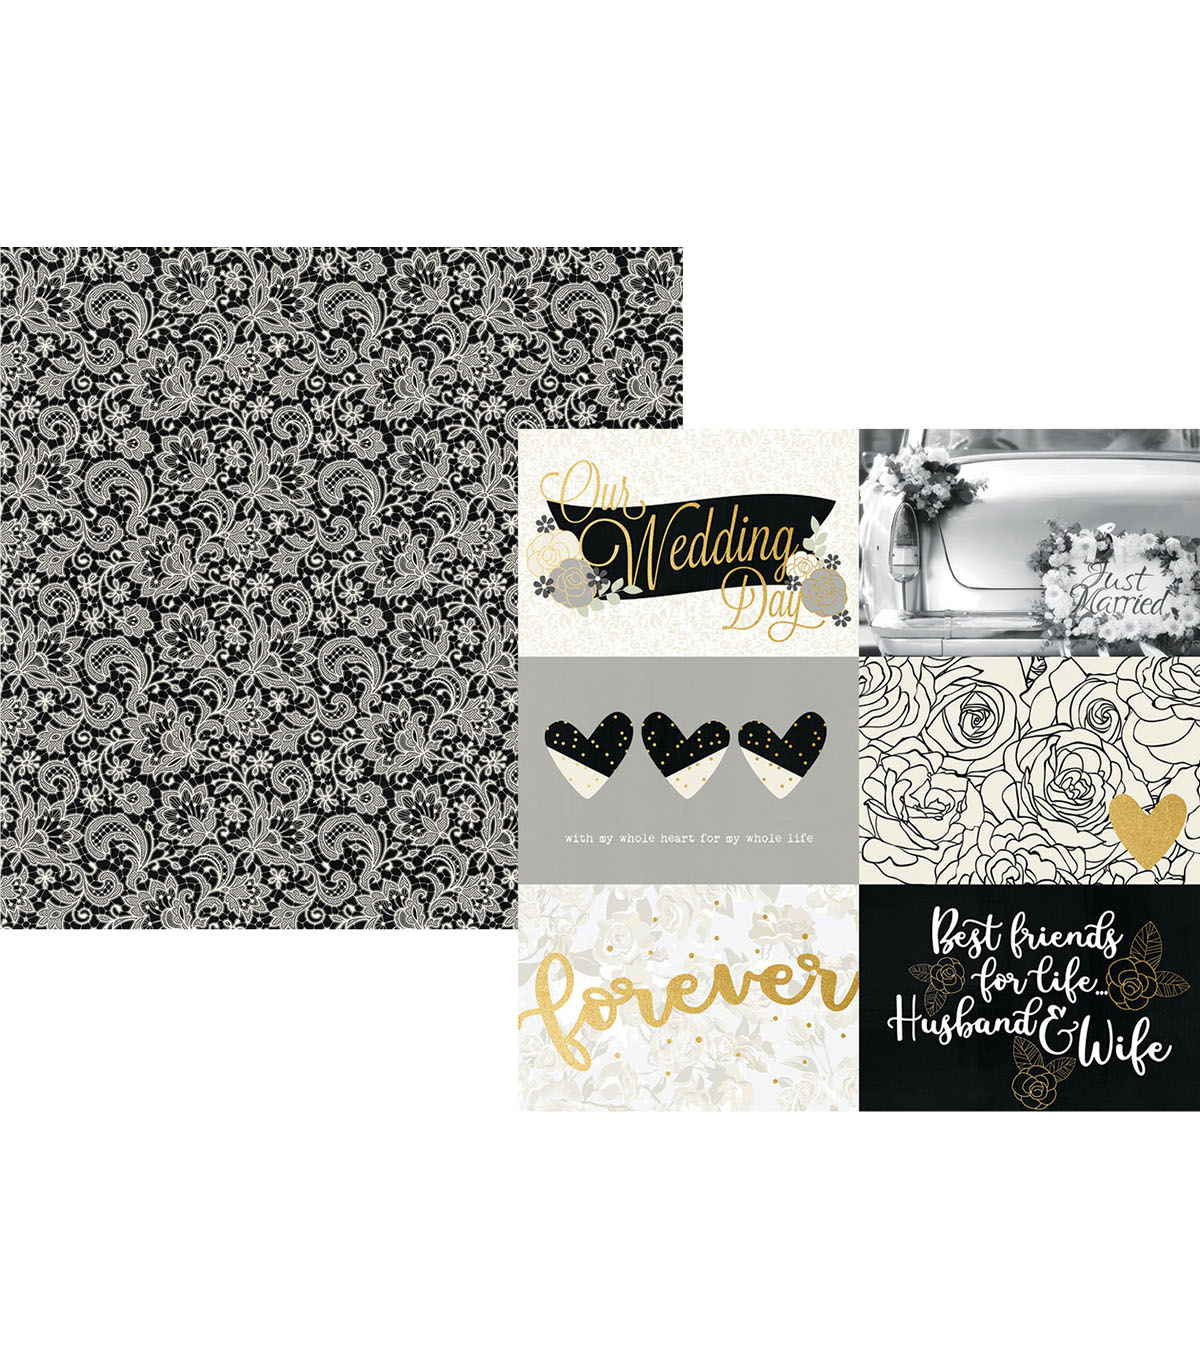 Simple Stories Always & Forever Cardstock with Horizontal Elements